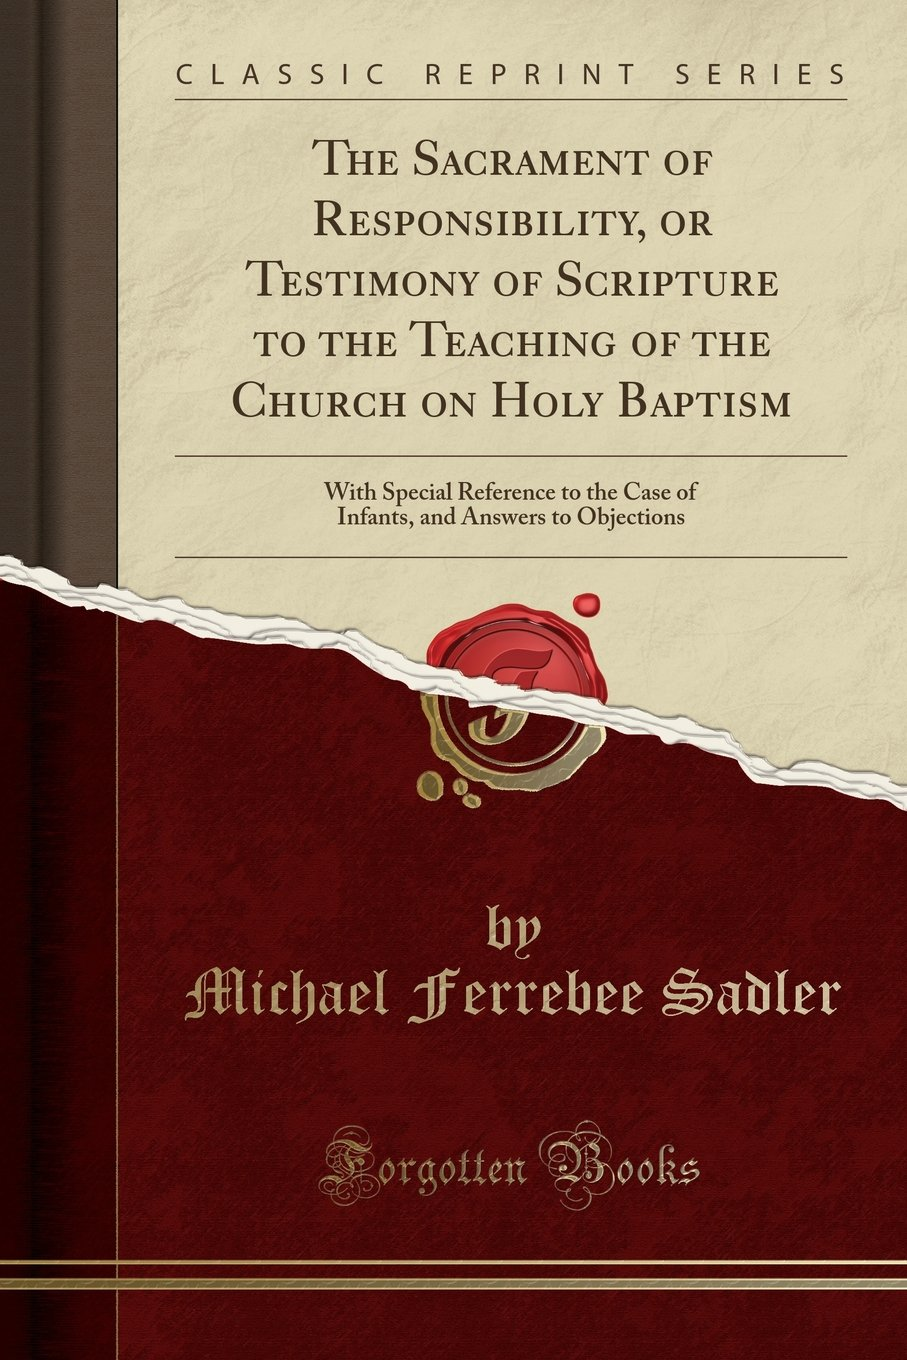 Read Online The Sacrament of Responsibility, or Testimony of Scripture to the Teaching of the Church on Holy Baptism: With Special Reference to the Case of Infants, and Answers to Objections (Classic Reprint) PDF